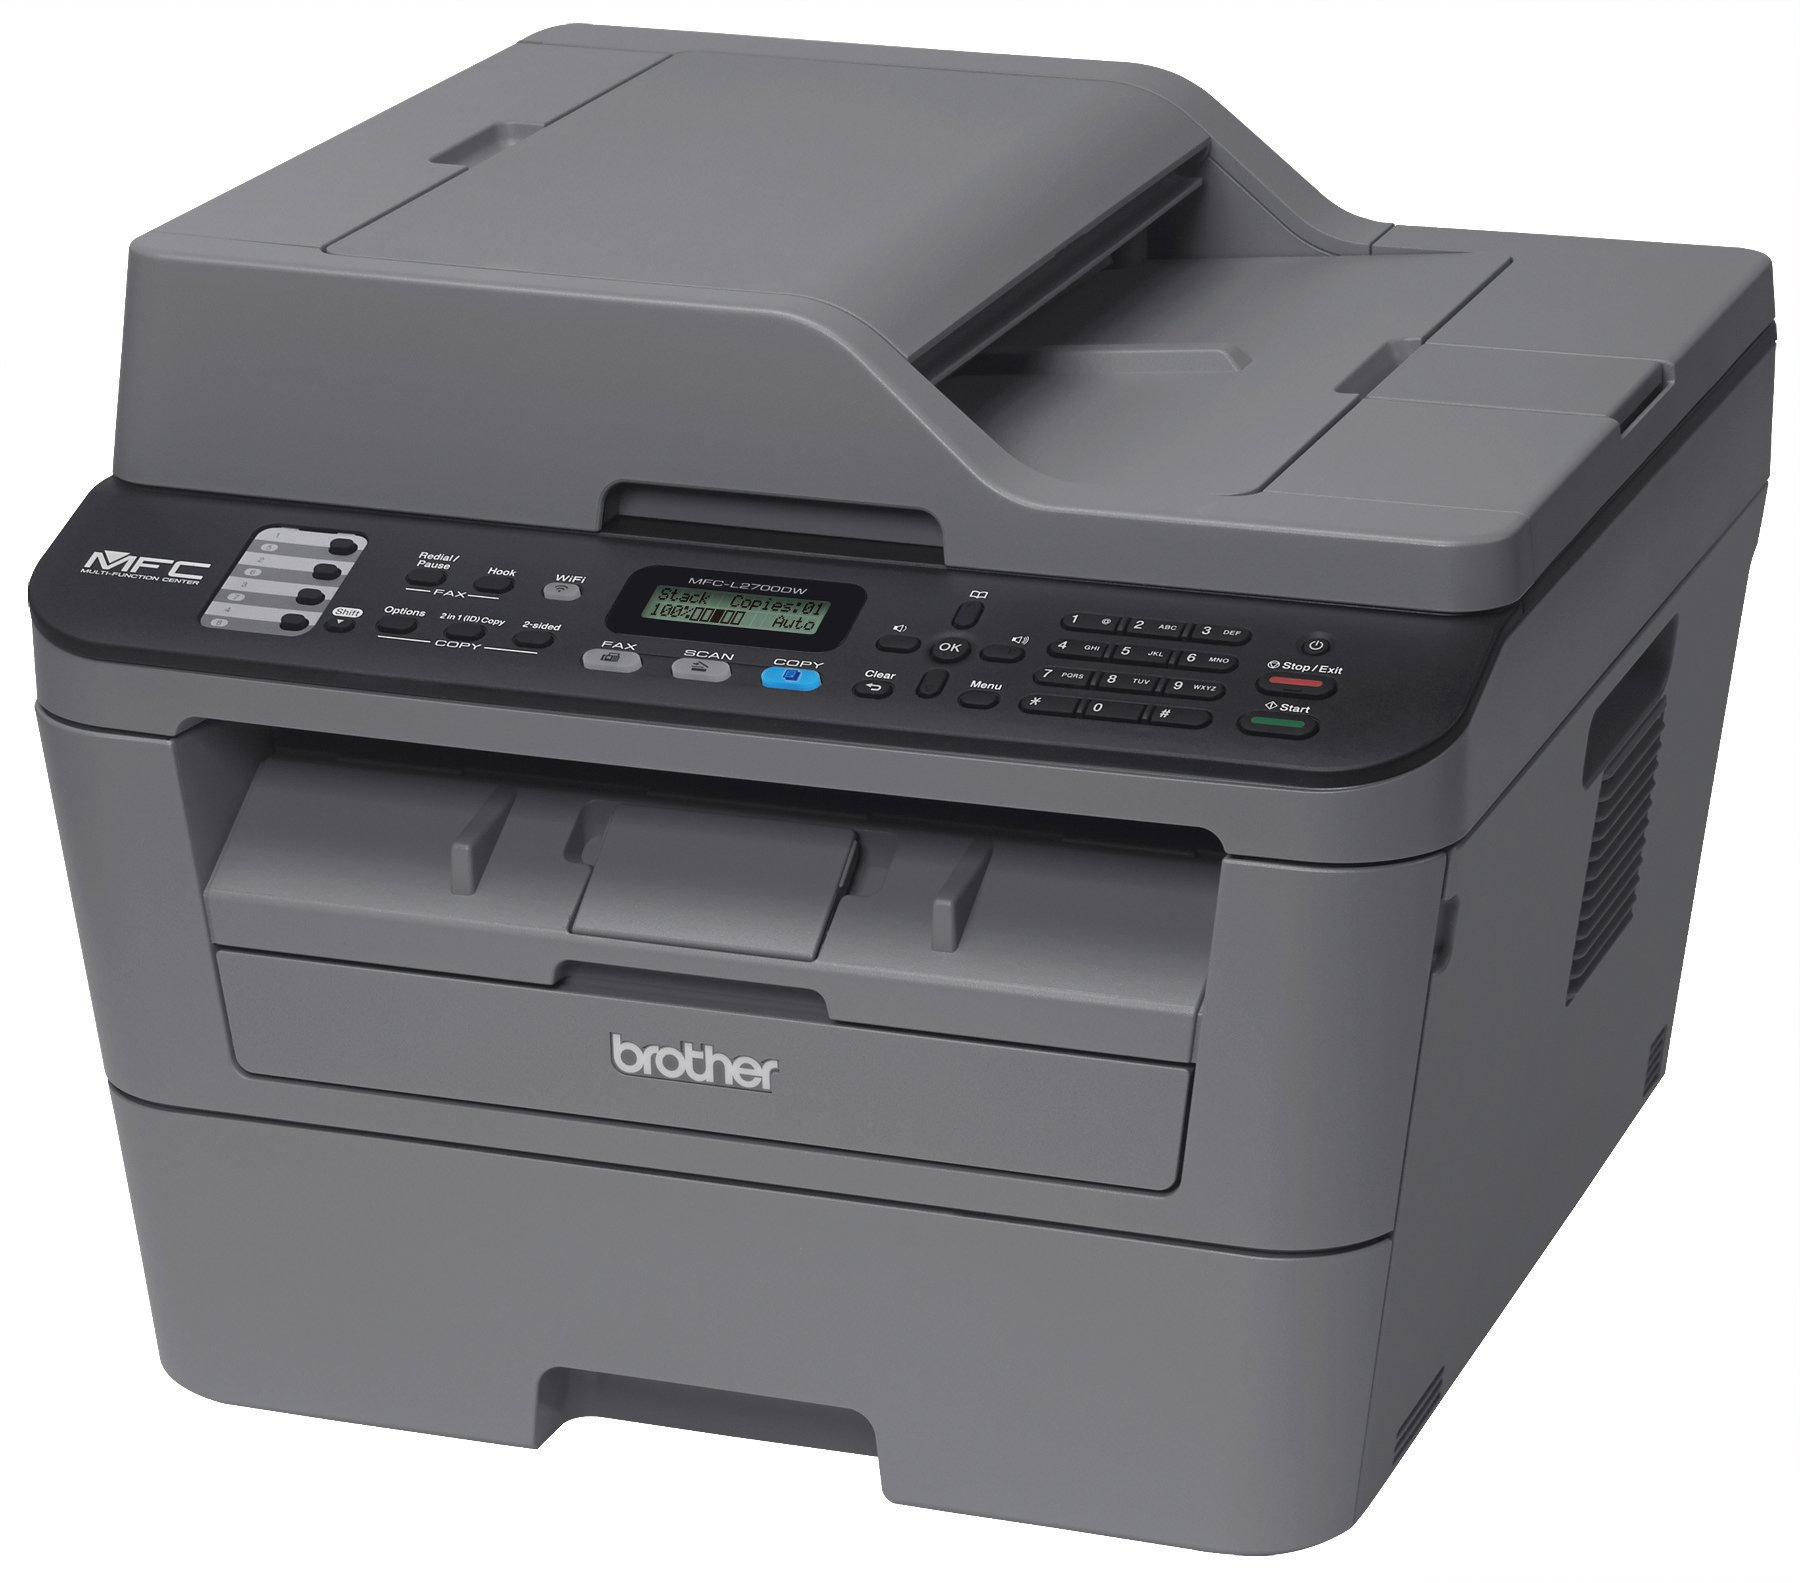 Brother MFCL2700DW All-In One Laser Printer with Wireless Networking and Duplex Printing, Amazon Dash Replenishment Enabled by Brother (Image #2)